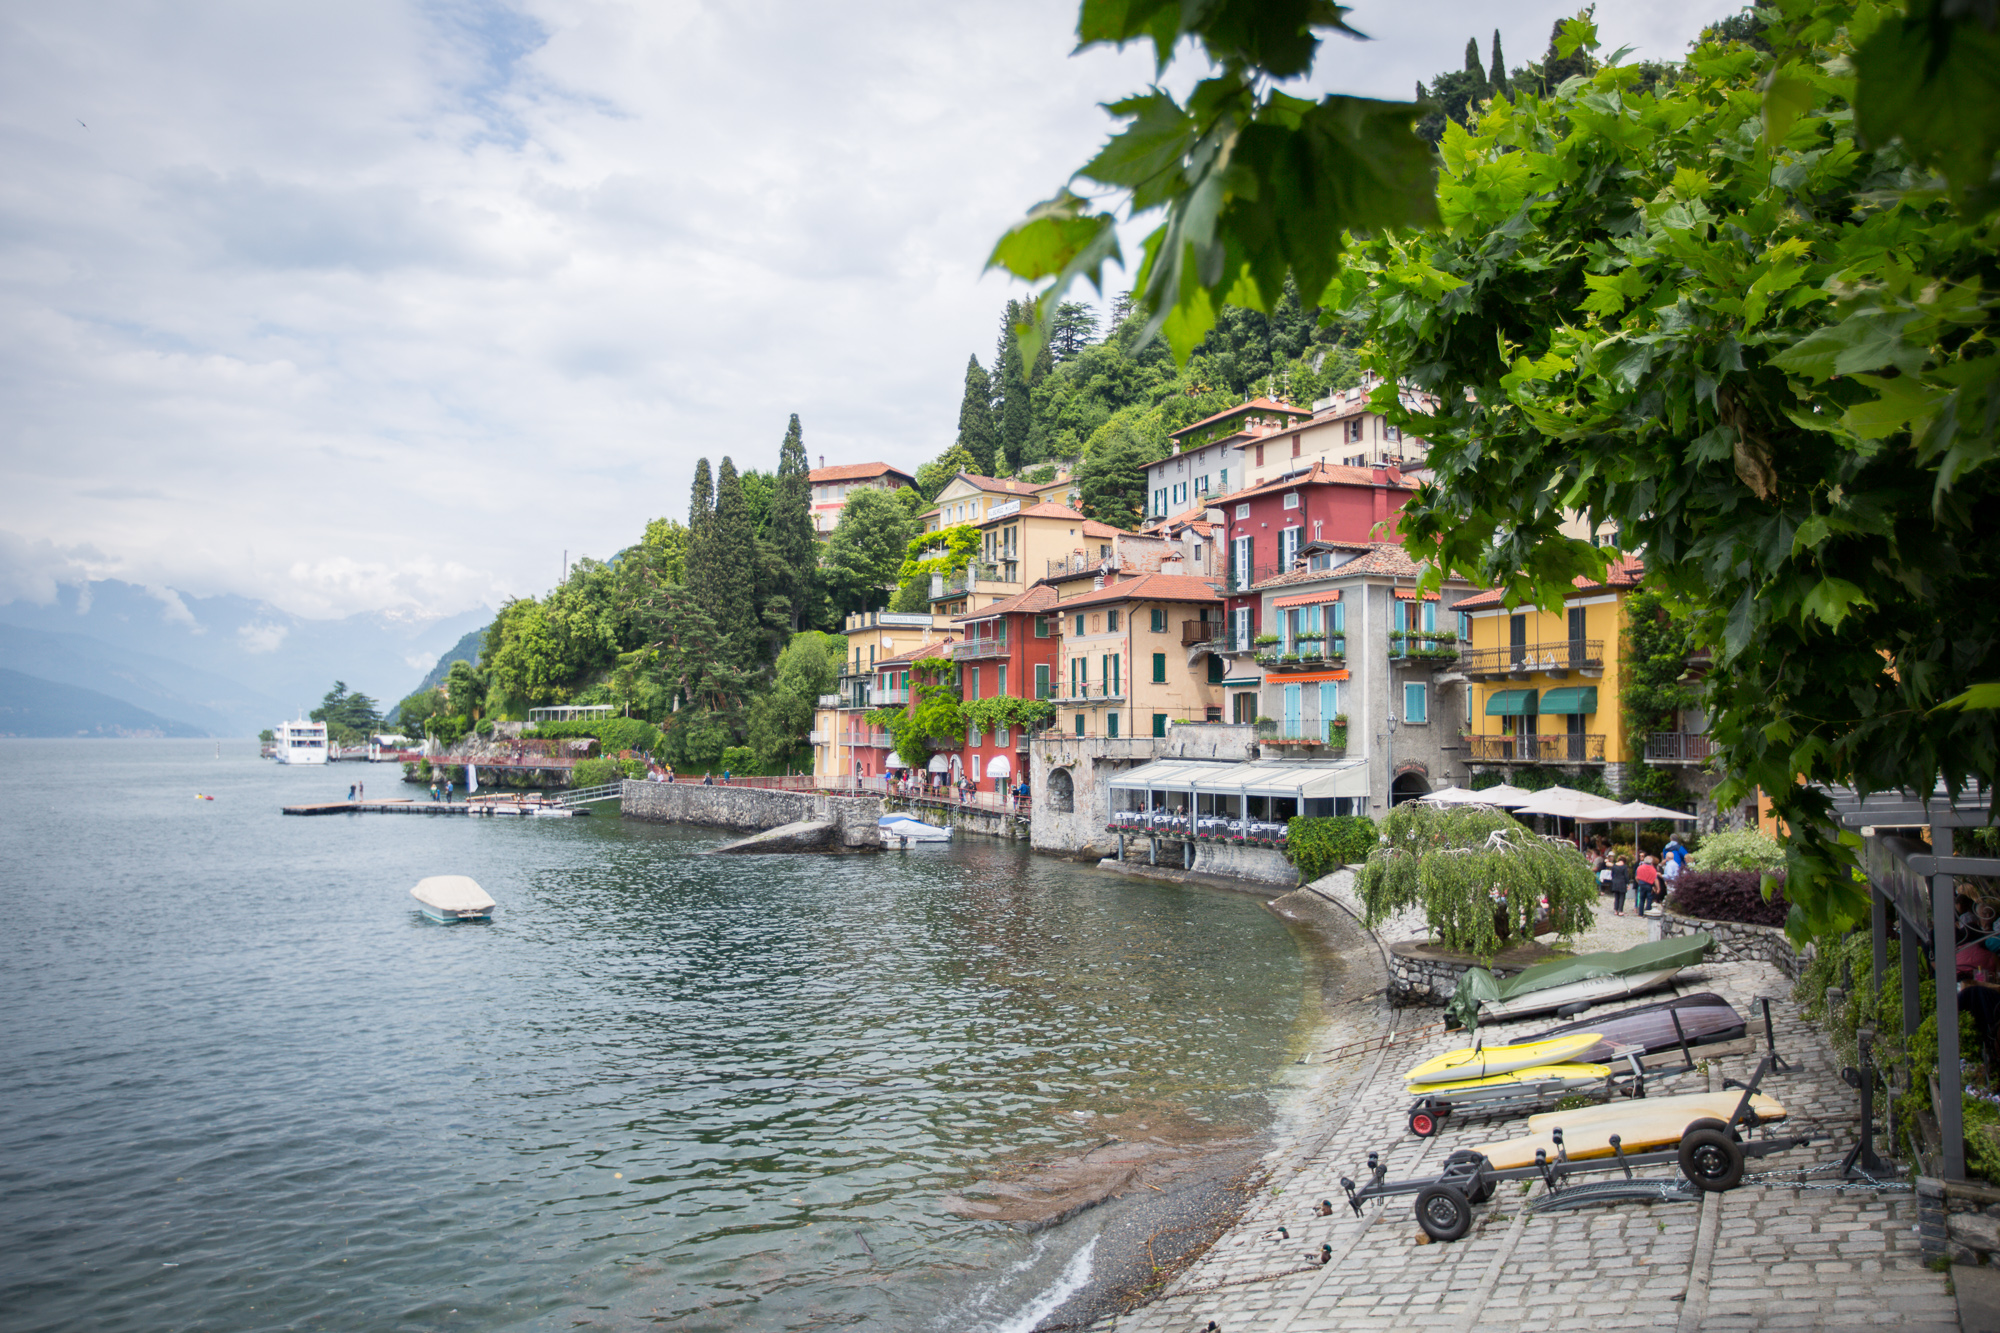 The picturesque town of Varenna, Lake Como www.caribbeansnowflake.com.jpg